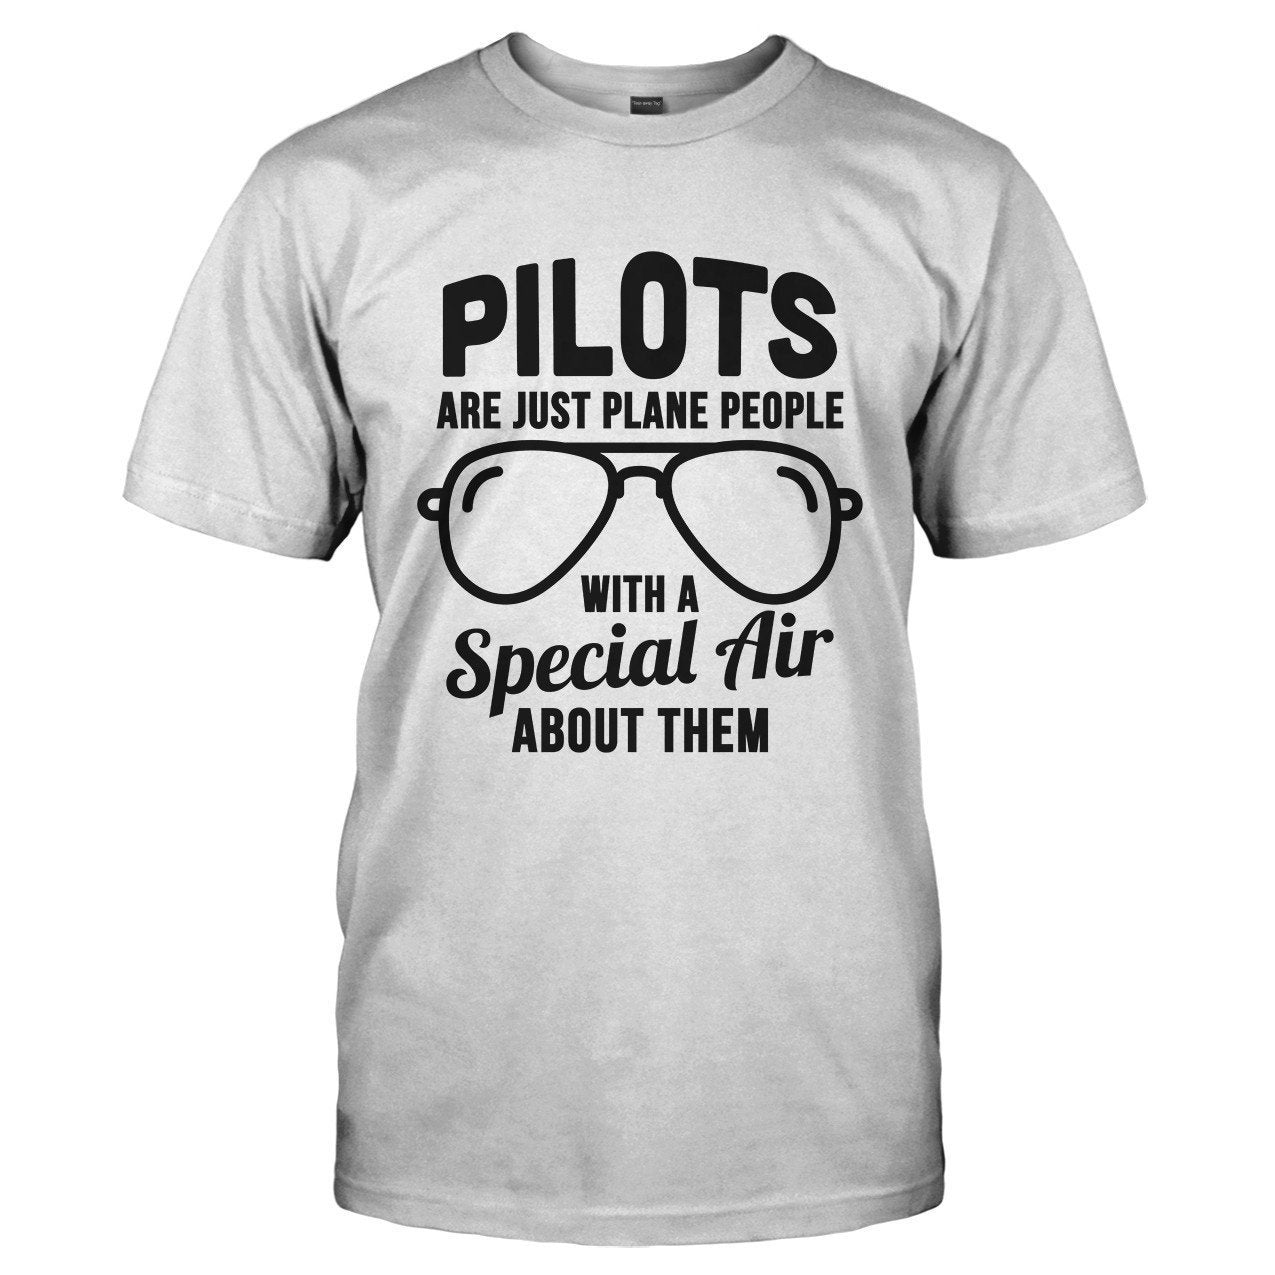 Pilots Are Just Plane People With A Special Air About Them - T Shirt